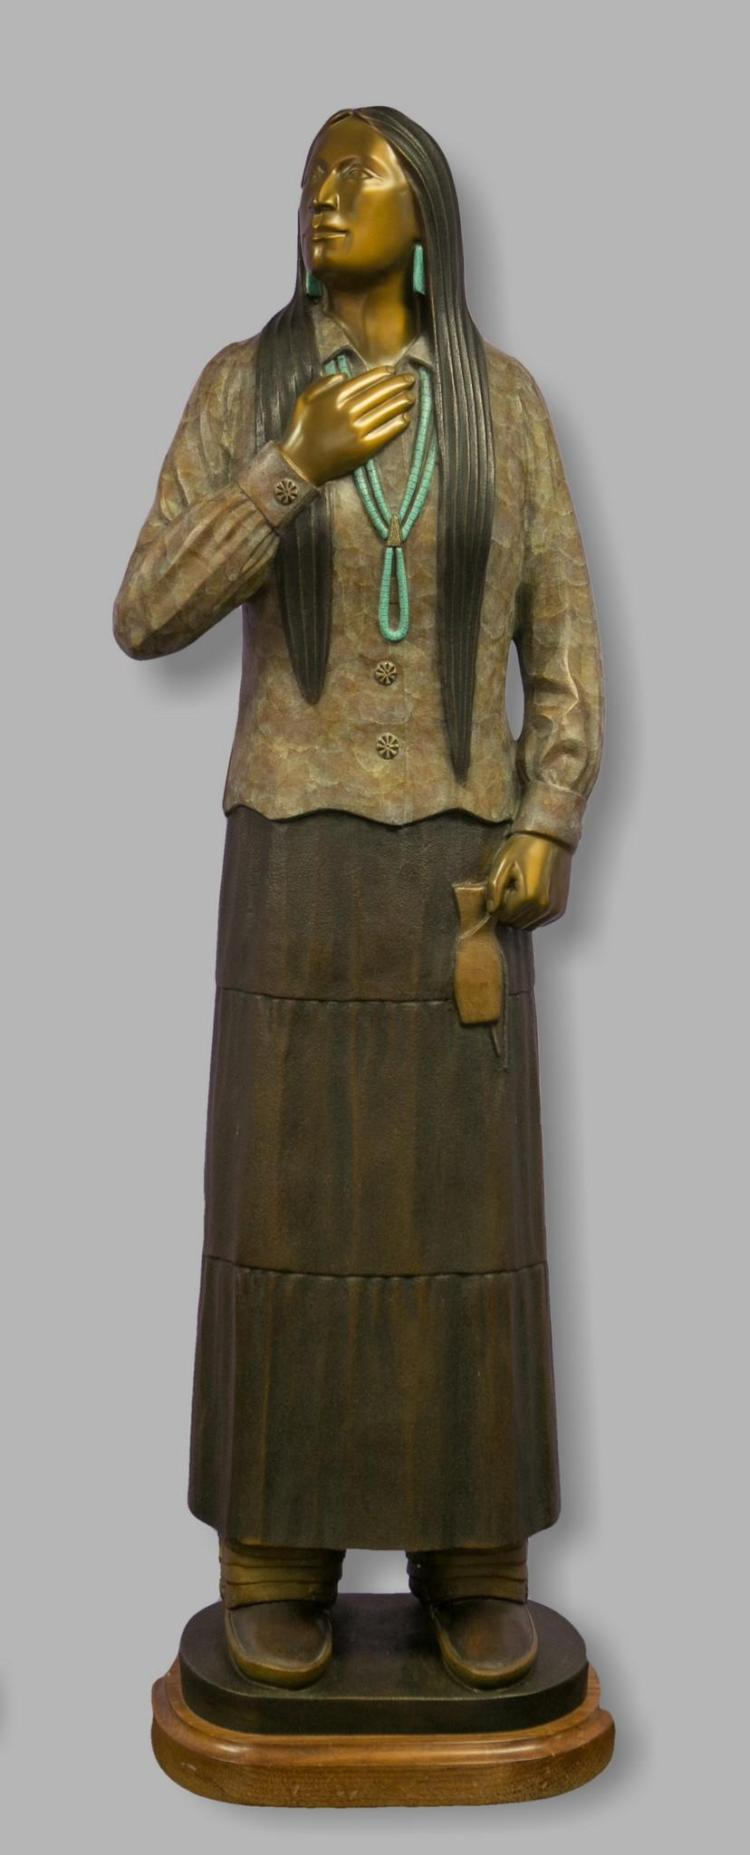 Larry Yazzie, Arizona, 20th c, polychrome bronze sculpture of Native American Woman, 47